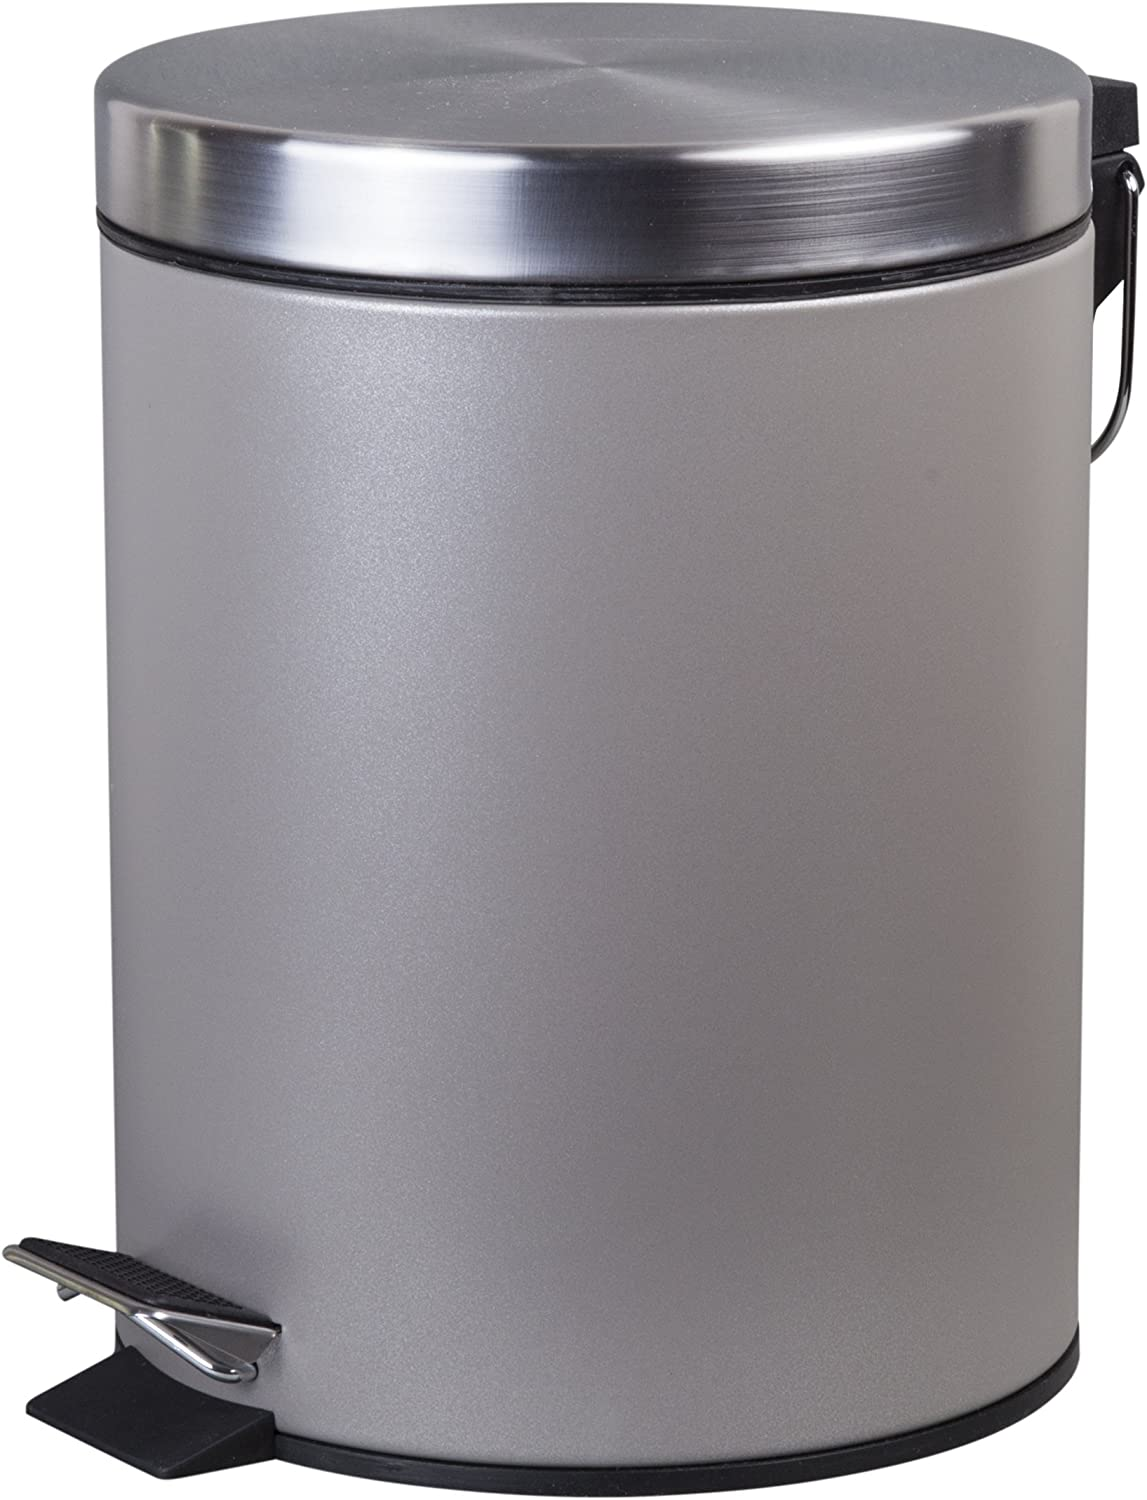 Creative Home 5 Liter/ 1.3 Gallon Round Step Trash Can Wastebasket Garbage Container Bin, Silver Powder Coating Finish